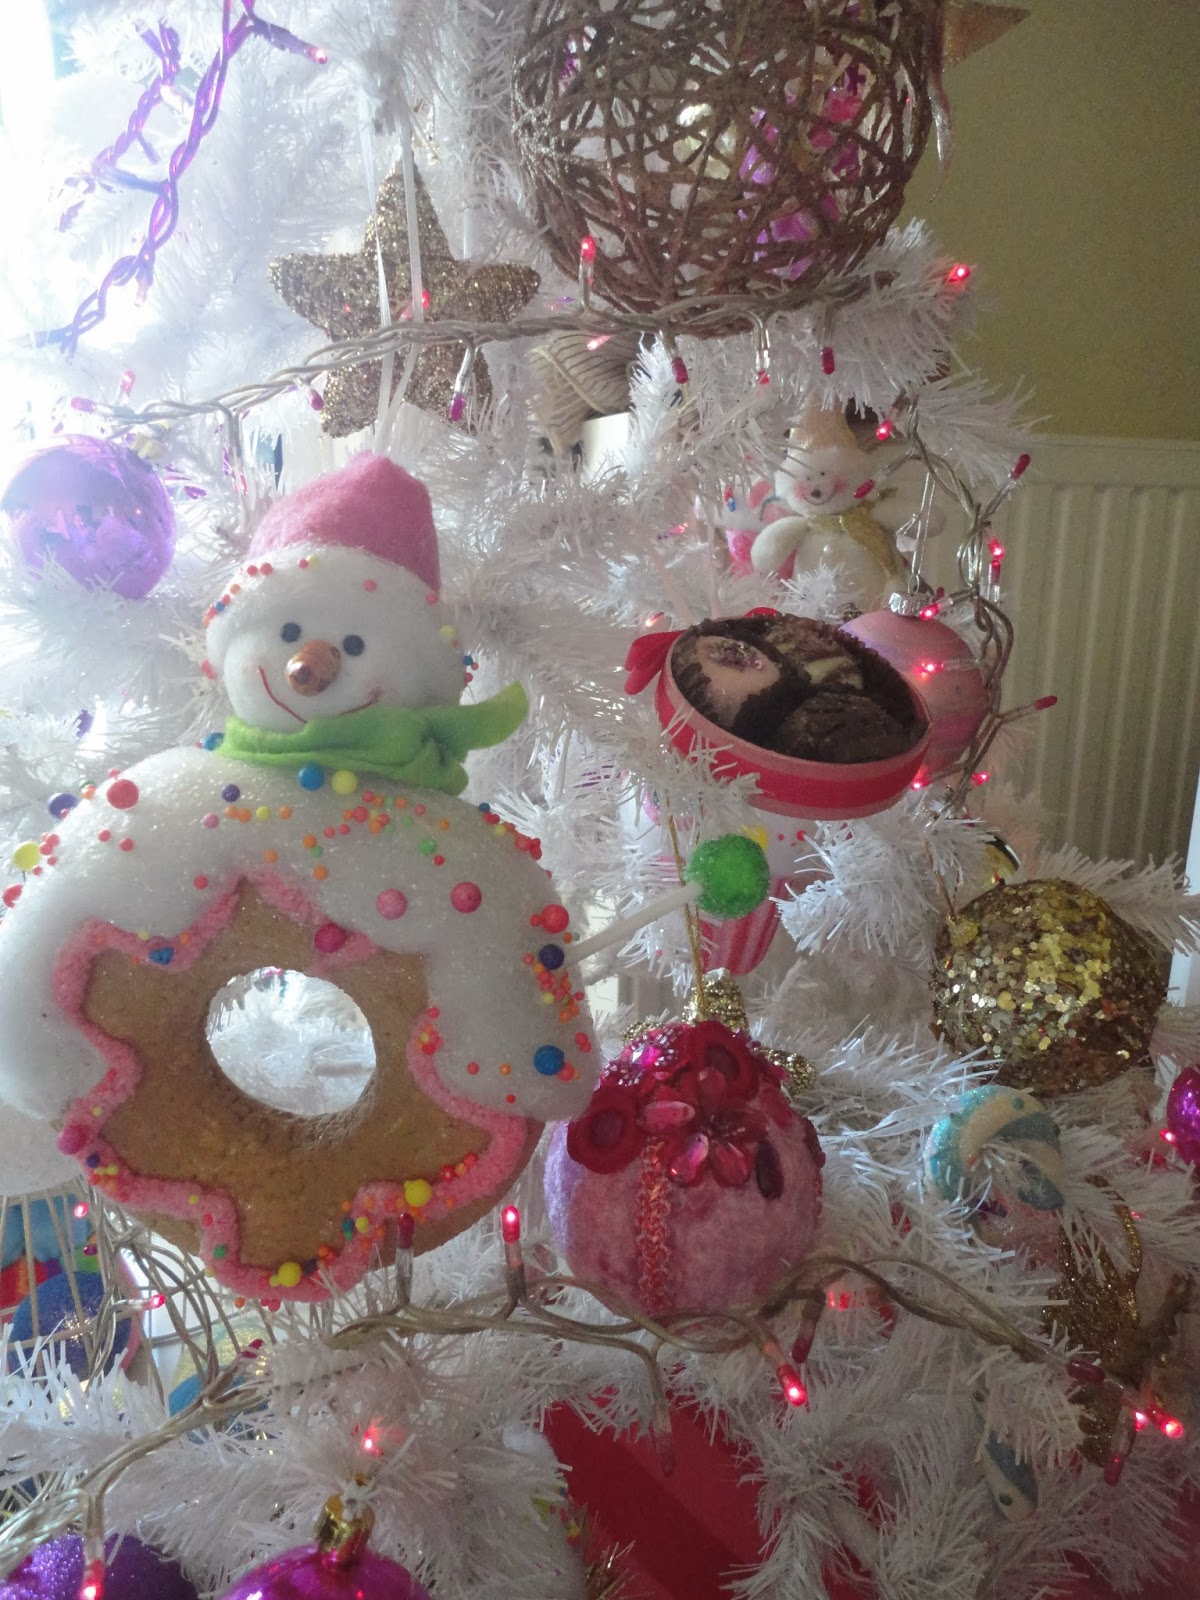 Large white christmas ornaments - So This Year My White Tree Is More Girly With Pink Purple Gold And White Christmas Ornaments Multicolored Cupcakes Candies Sweets Donuts Not Real And Pink